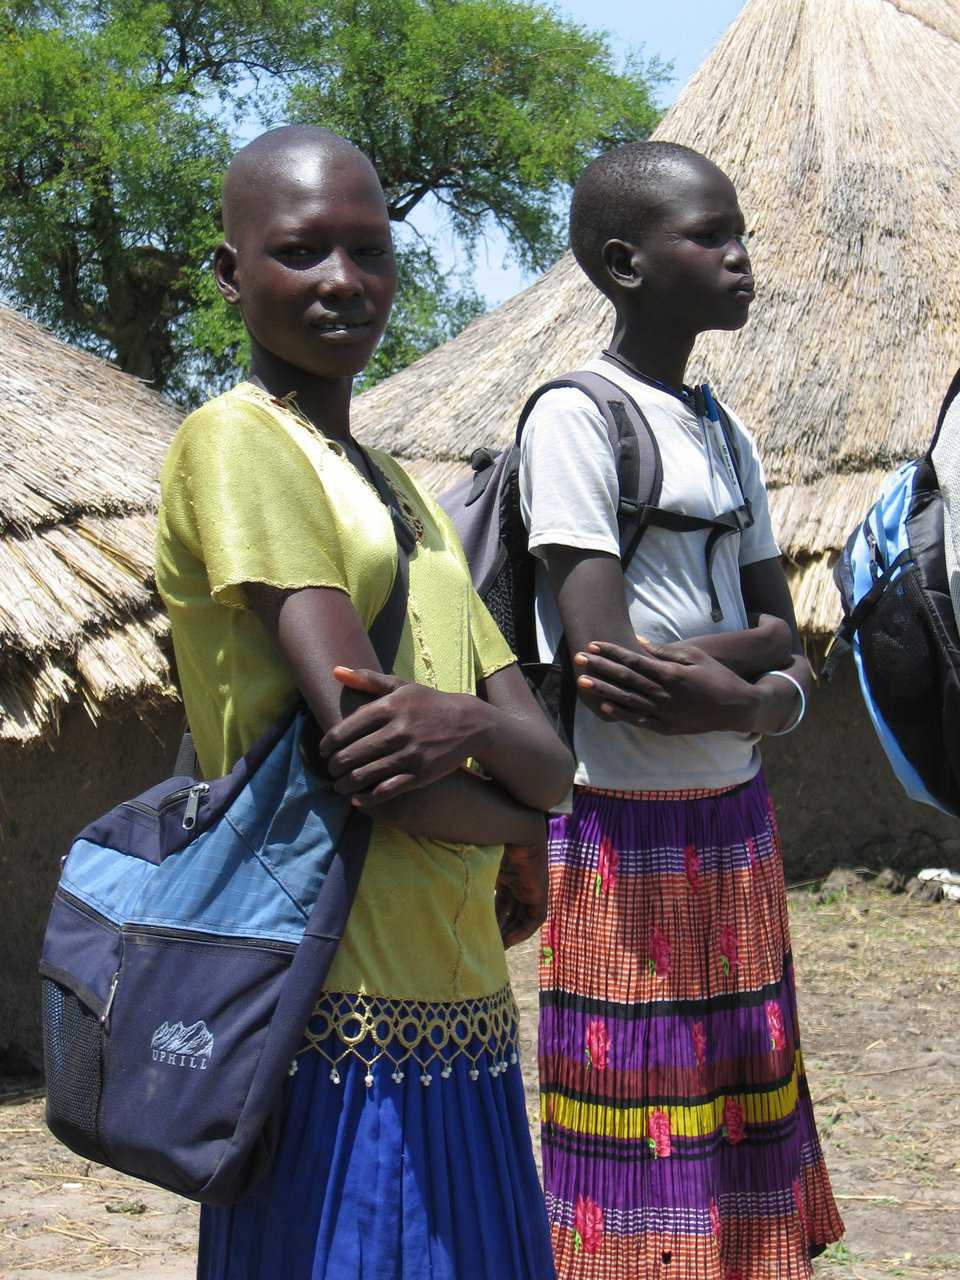 Backpacks — On their second trip to Sudan, Kristy and Abraham distributed more than 350 backpack kits including exercise books, pens, and pencils to the students in Yomchiir and Leilir Primary Schools. They still have 1 ton of school supplies to ship and distribute to the children in Southern Sudan.